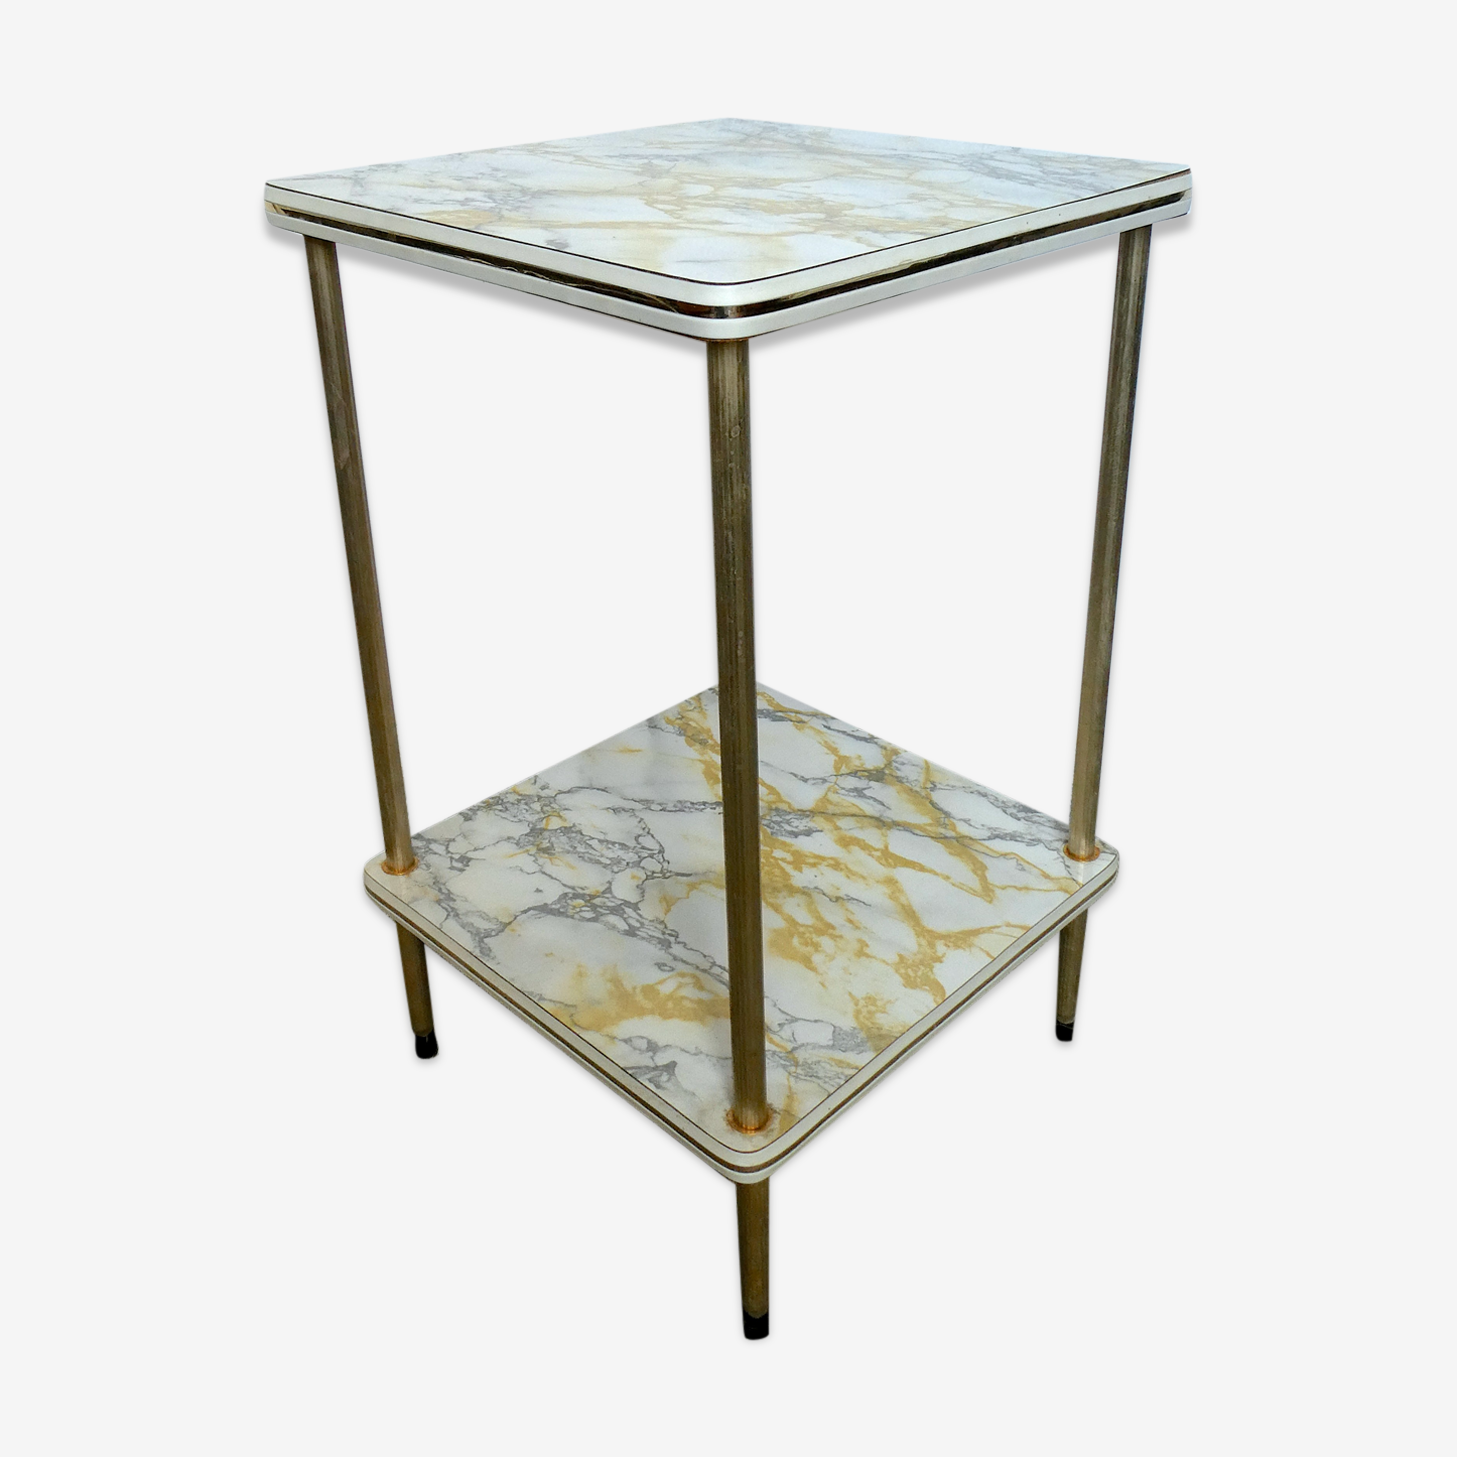 Gold metal and formica imitating marble side table